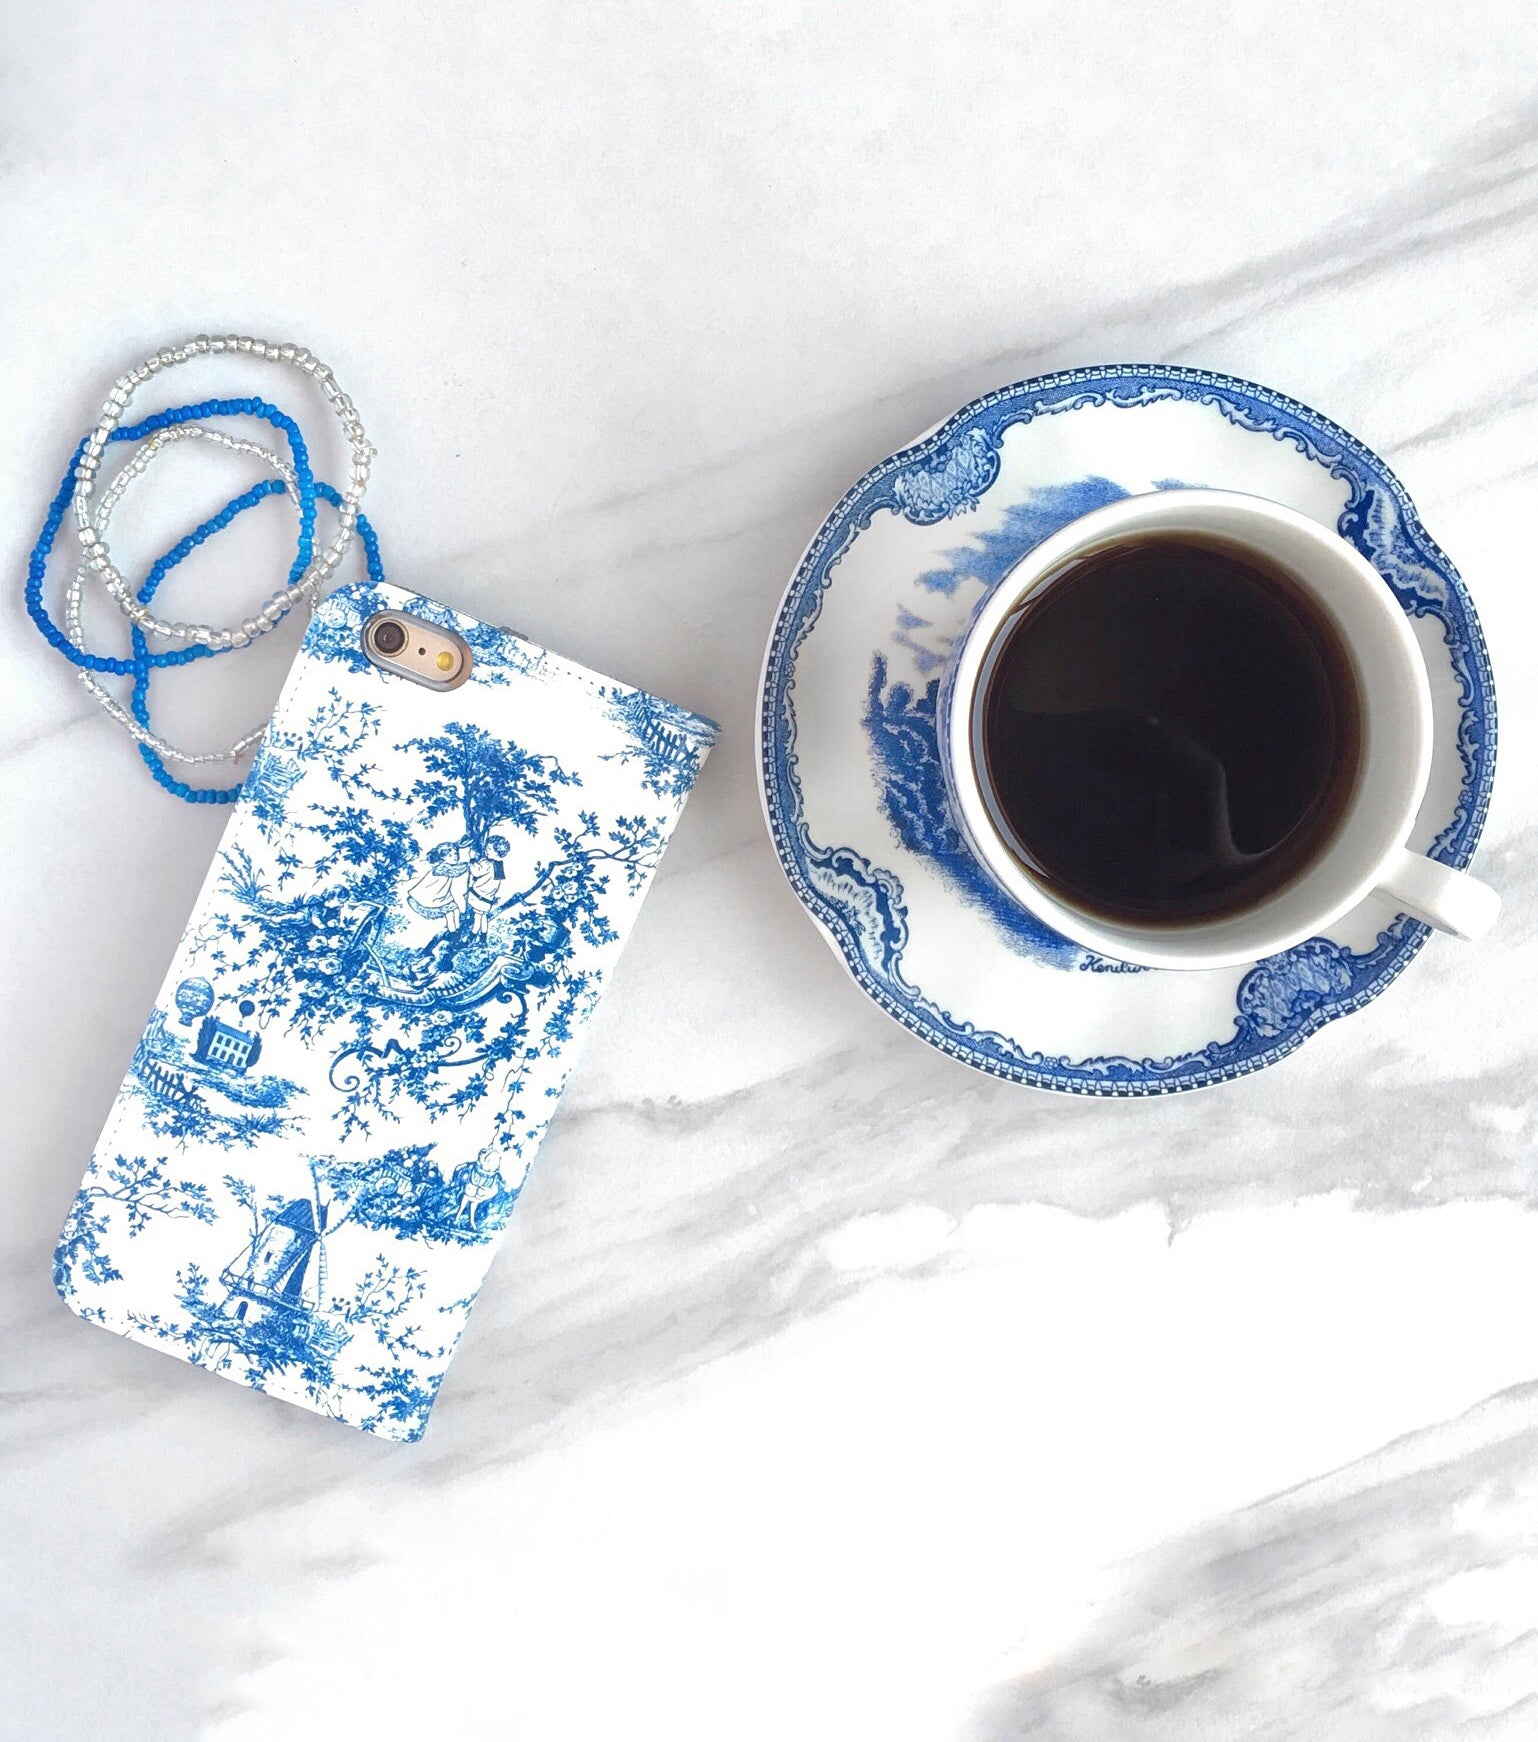 Blue Toile Wallet case for iPhone with coffee